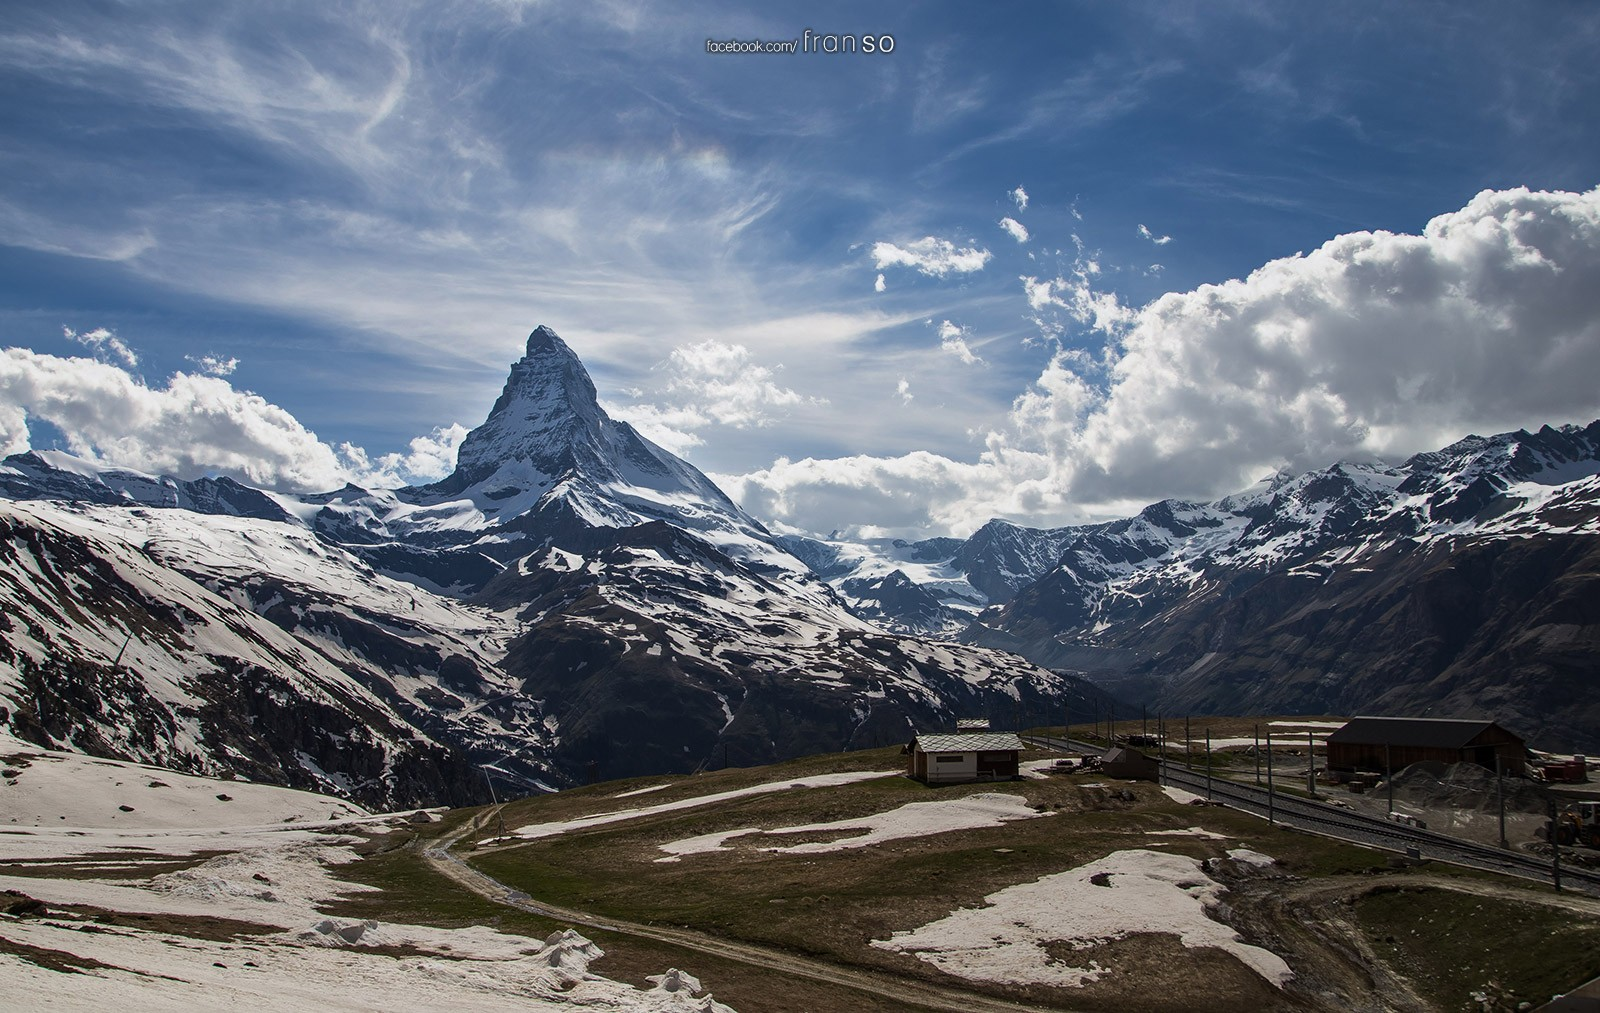 Landscape | Switzerland | Matterhorn  | Taken on the train